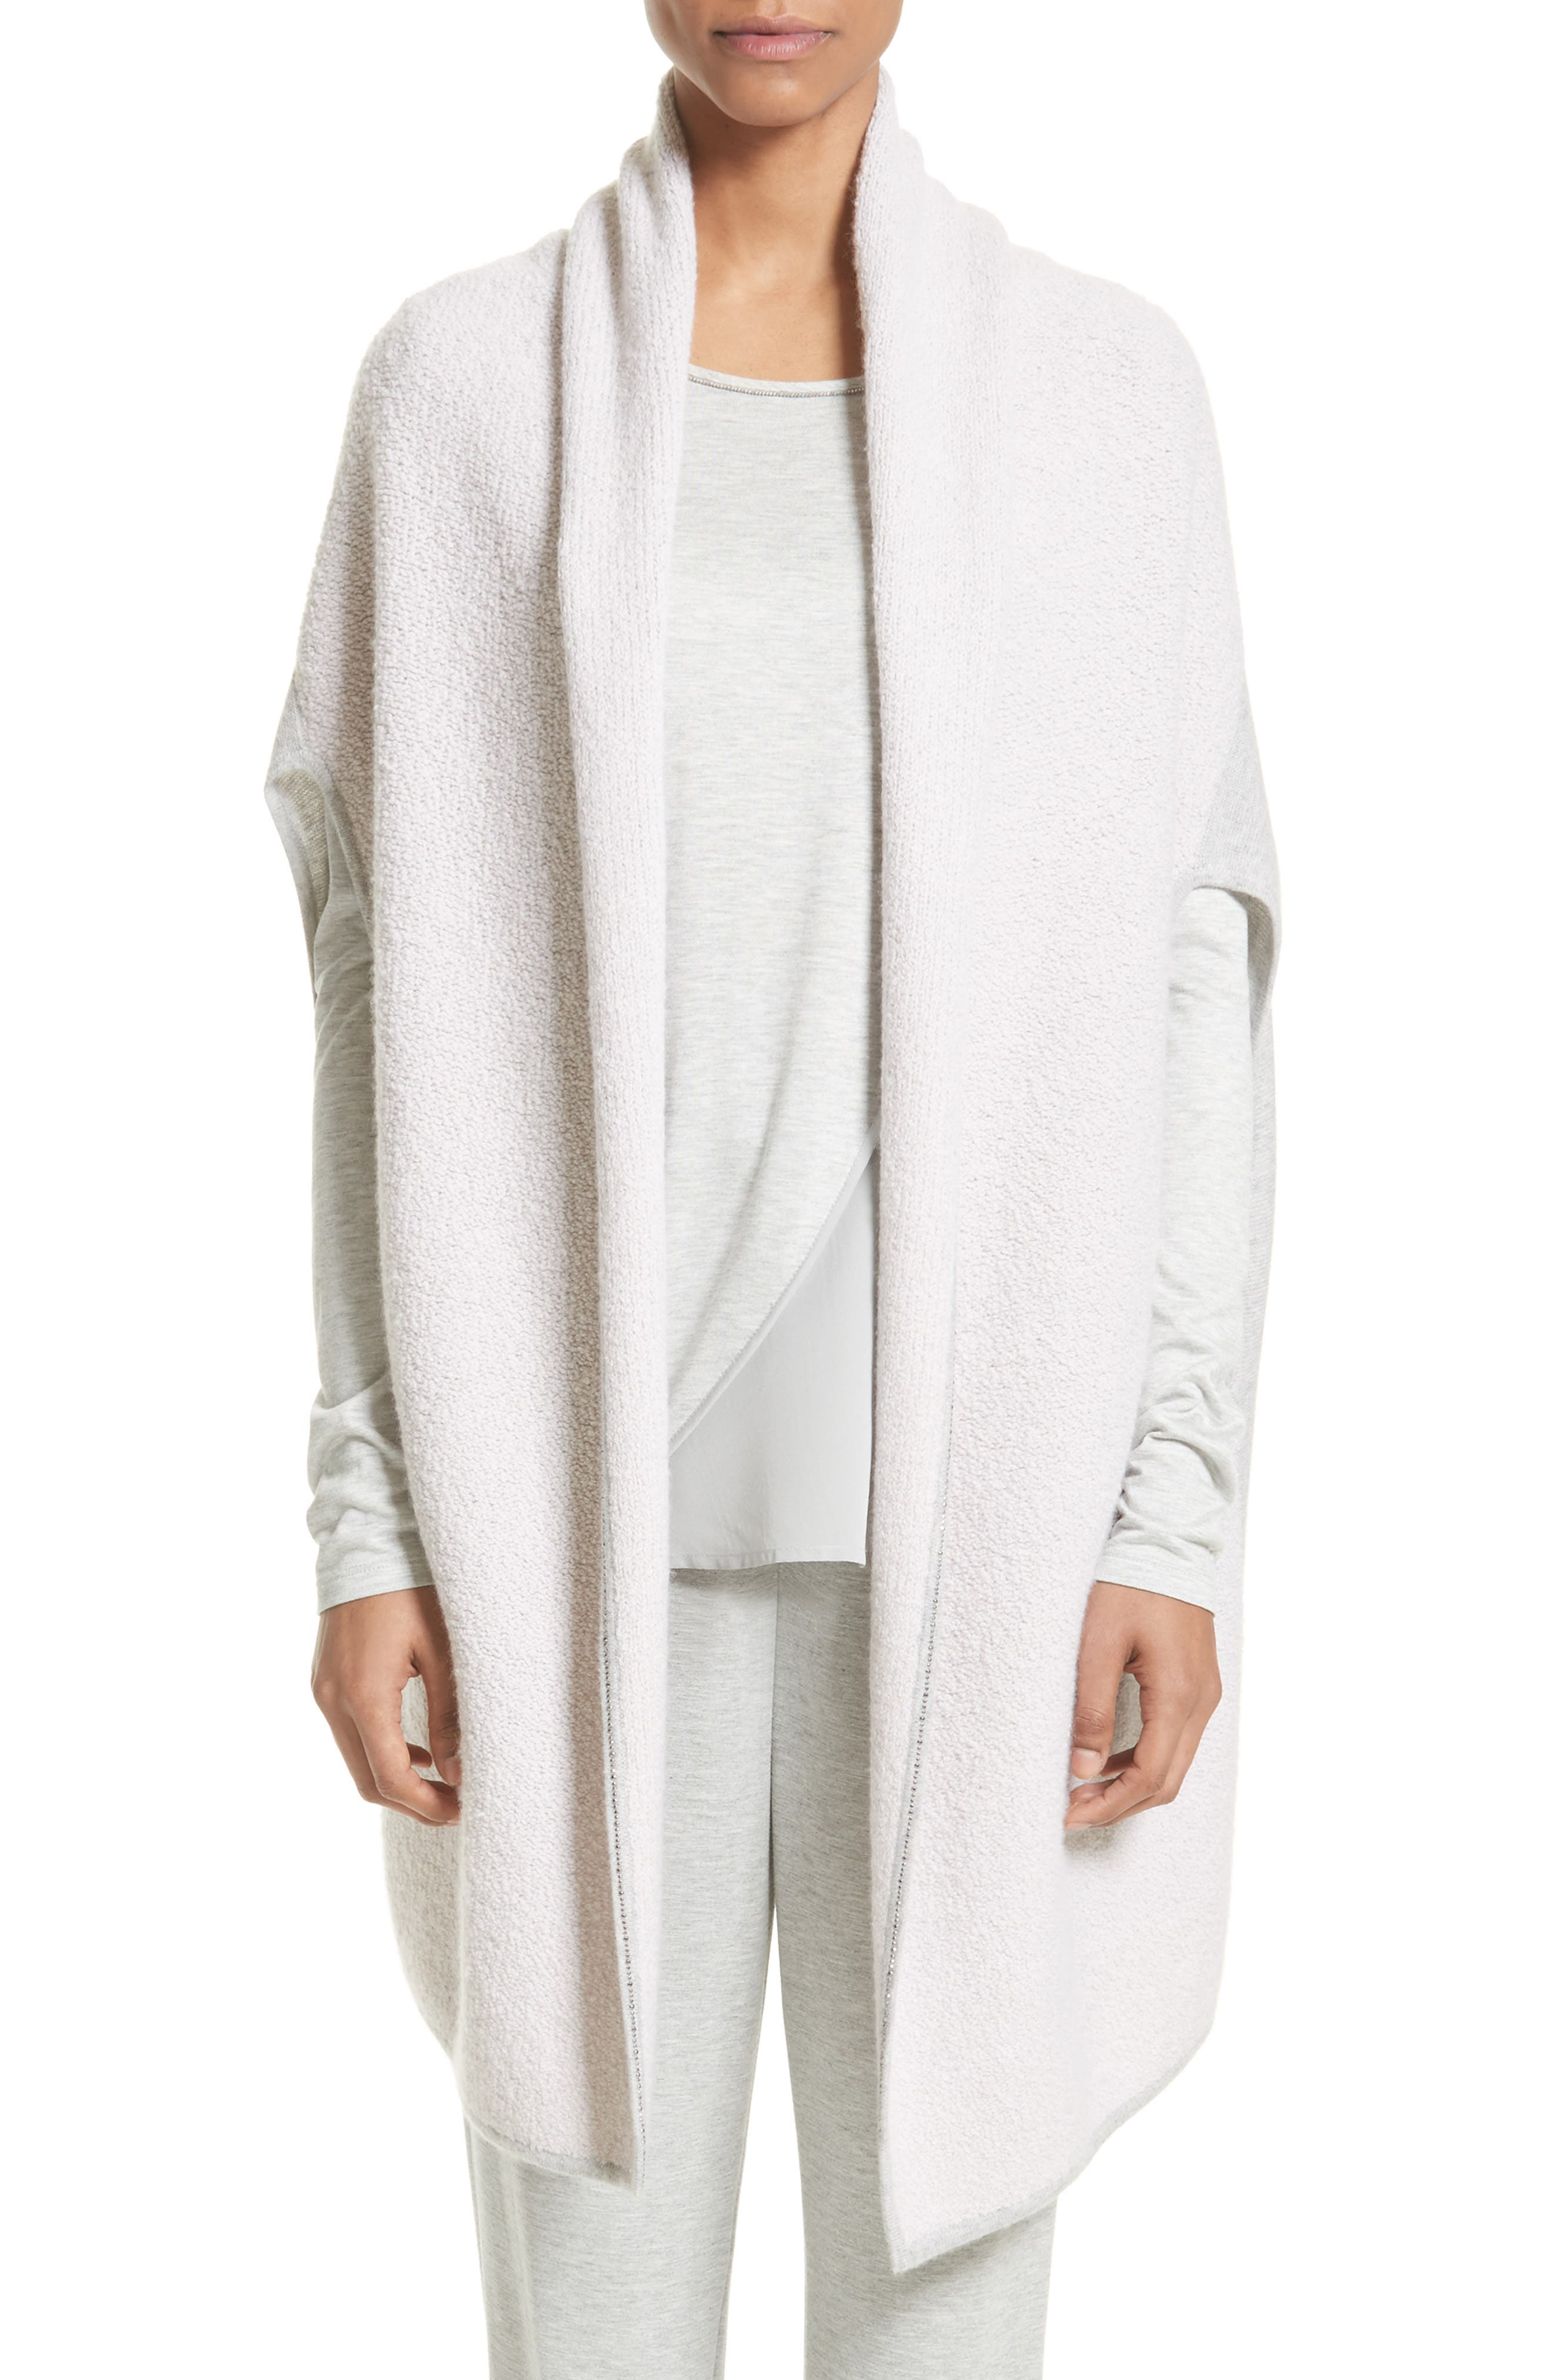 Alternate Image 1 Selected - St. John Collection Cashmere Jersey Cardigan